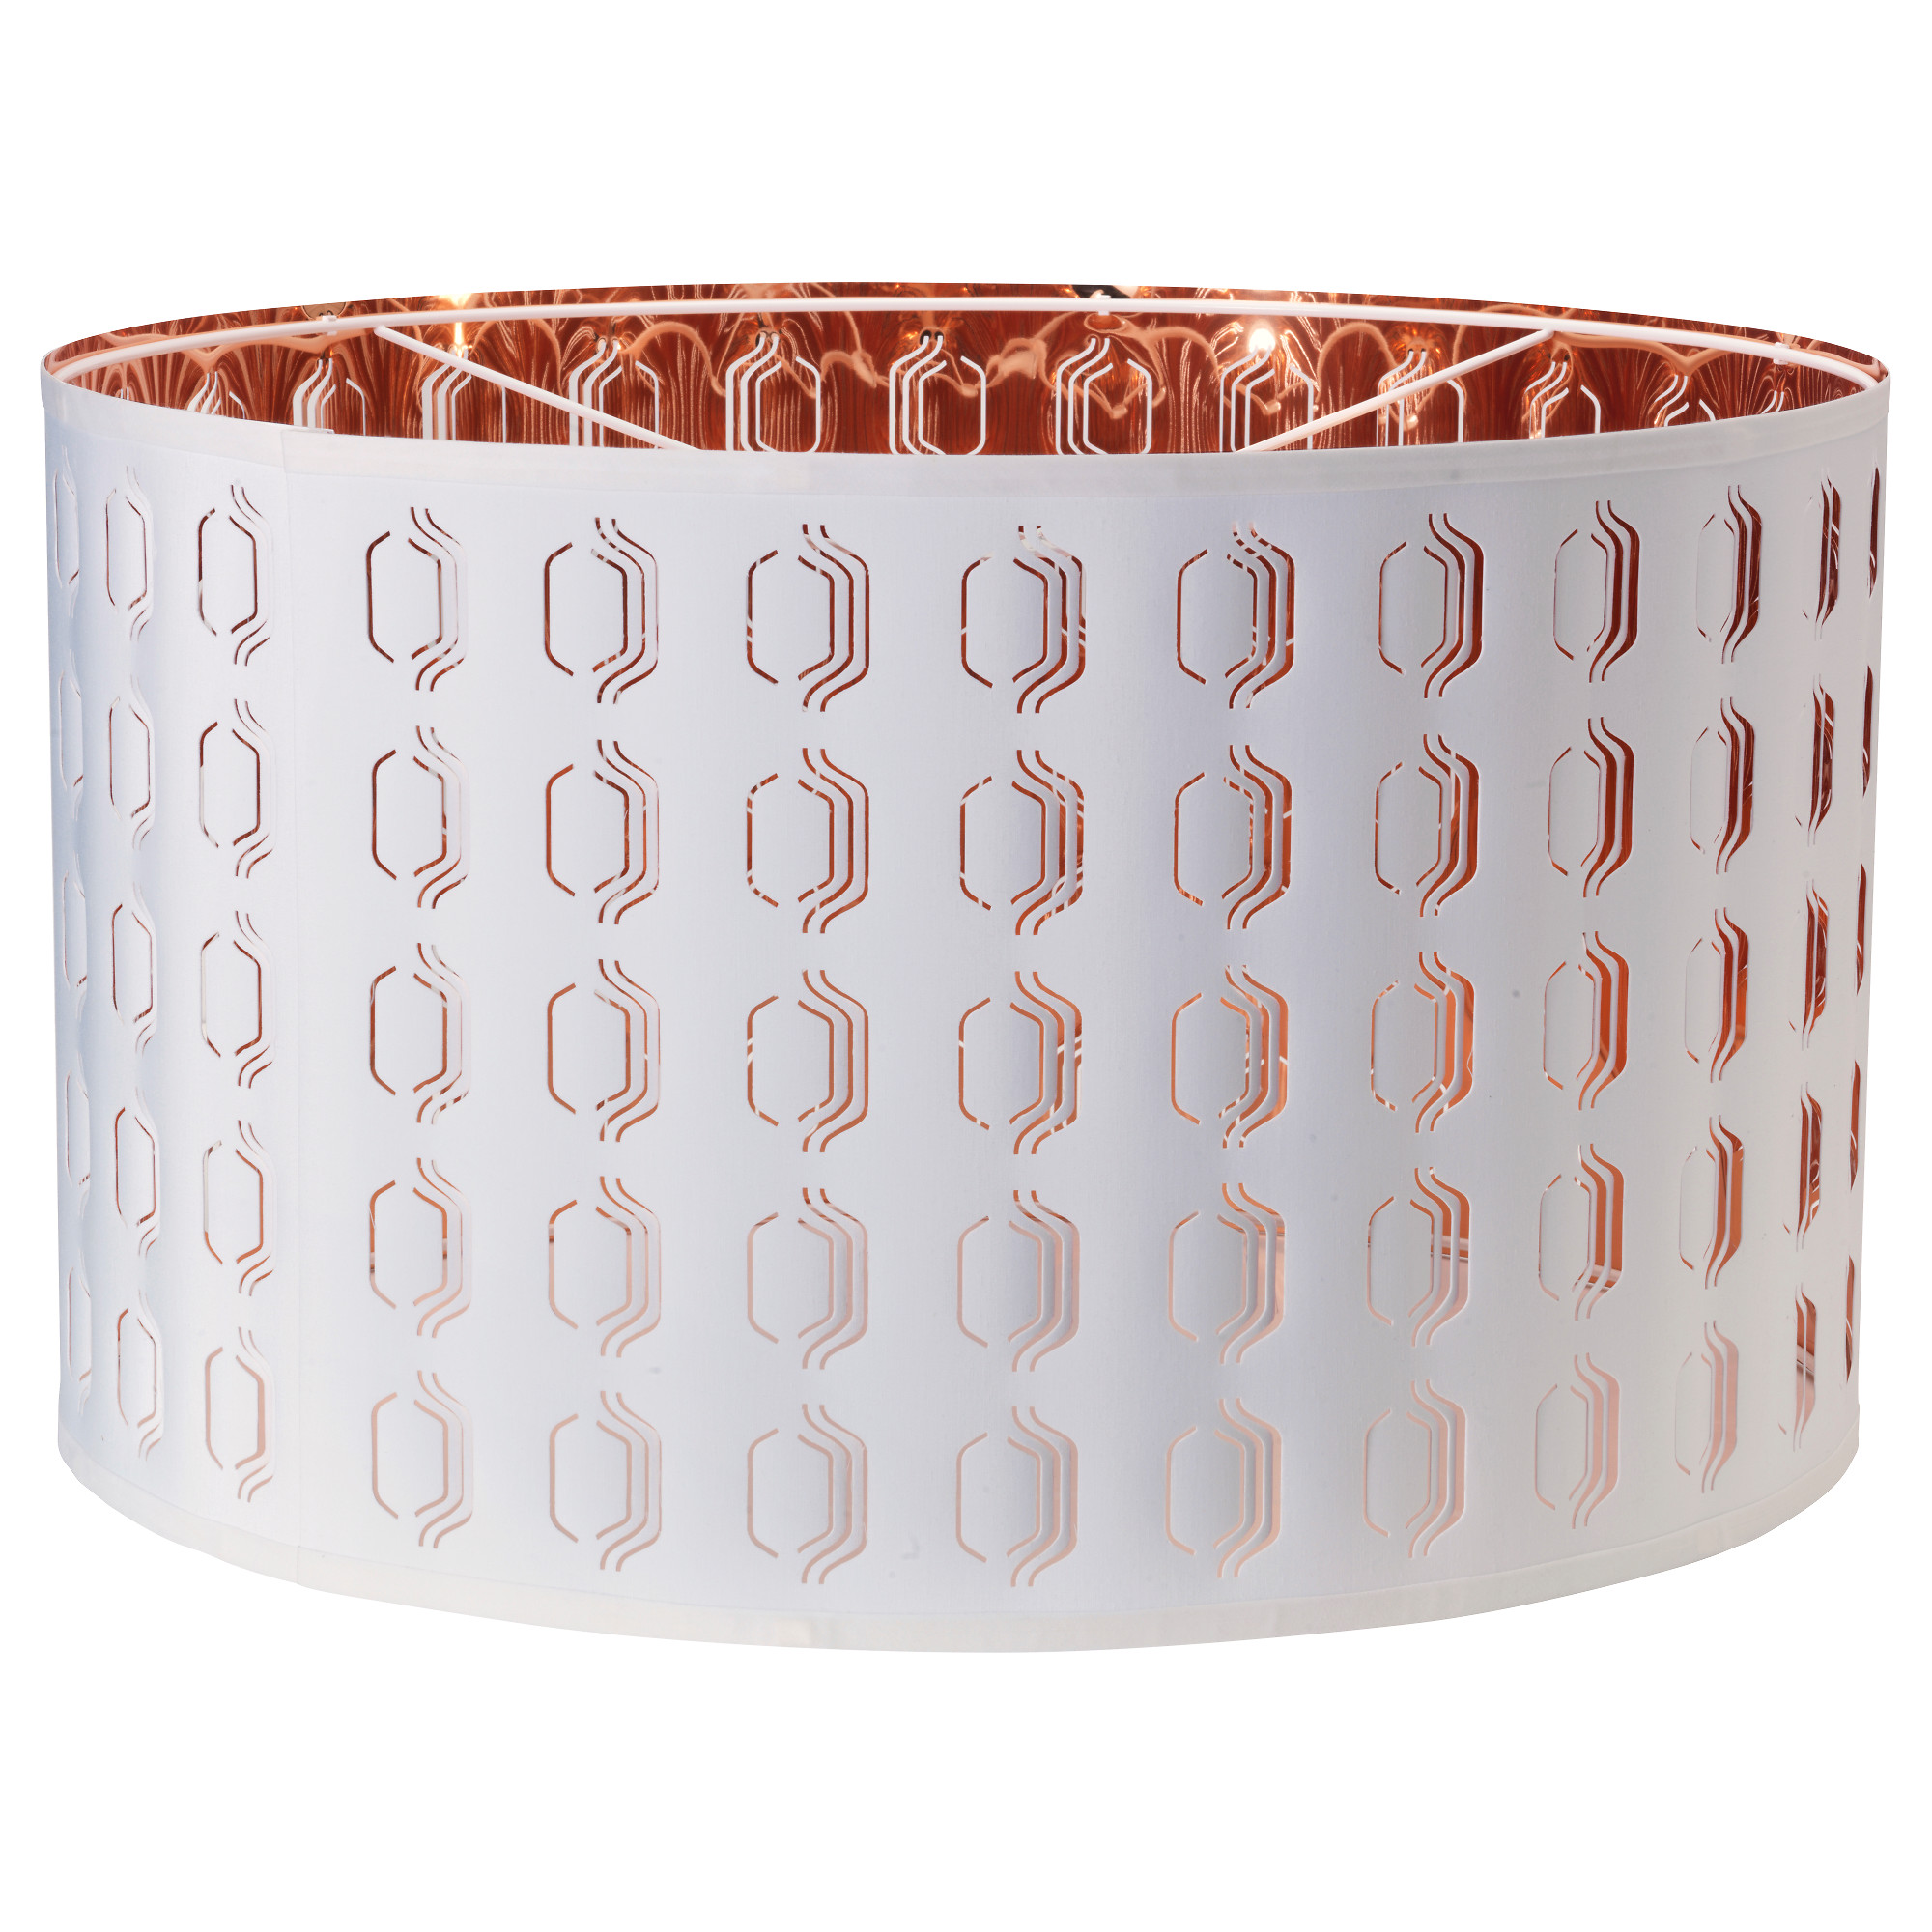 "Copper Lamp Shade Ikea NYM lamp shade, white, copper color Diameter: 23 "" Height: 14 """